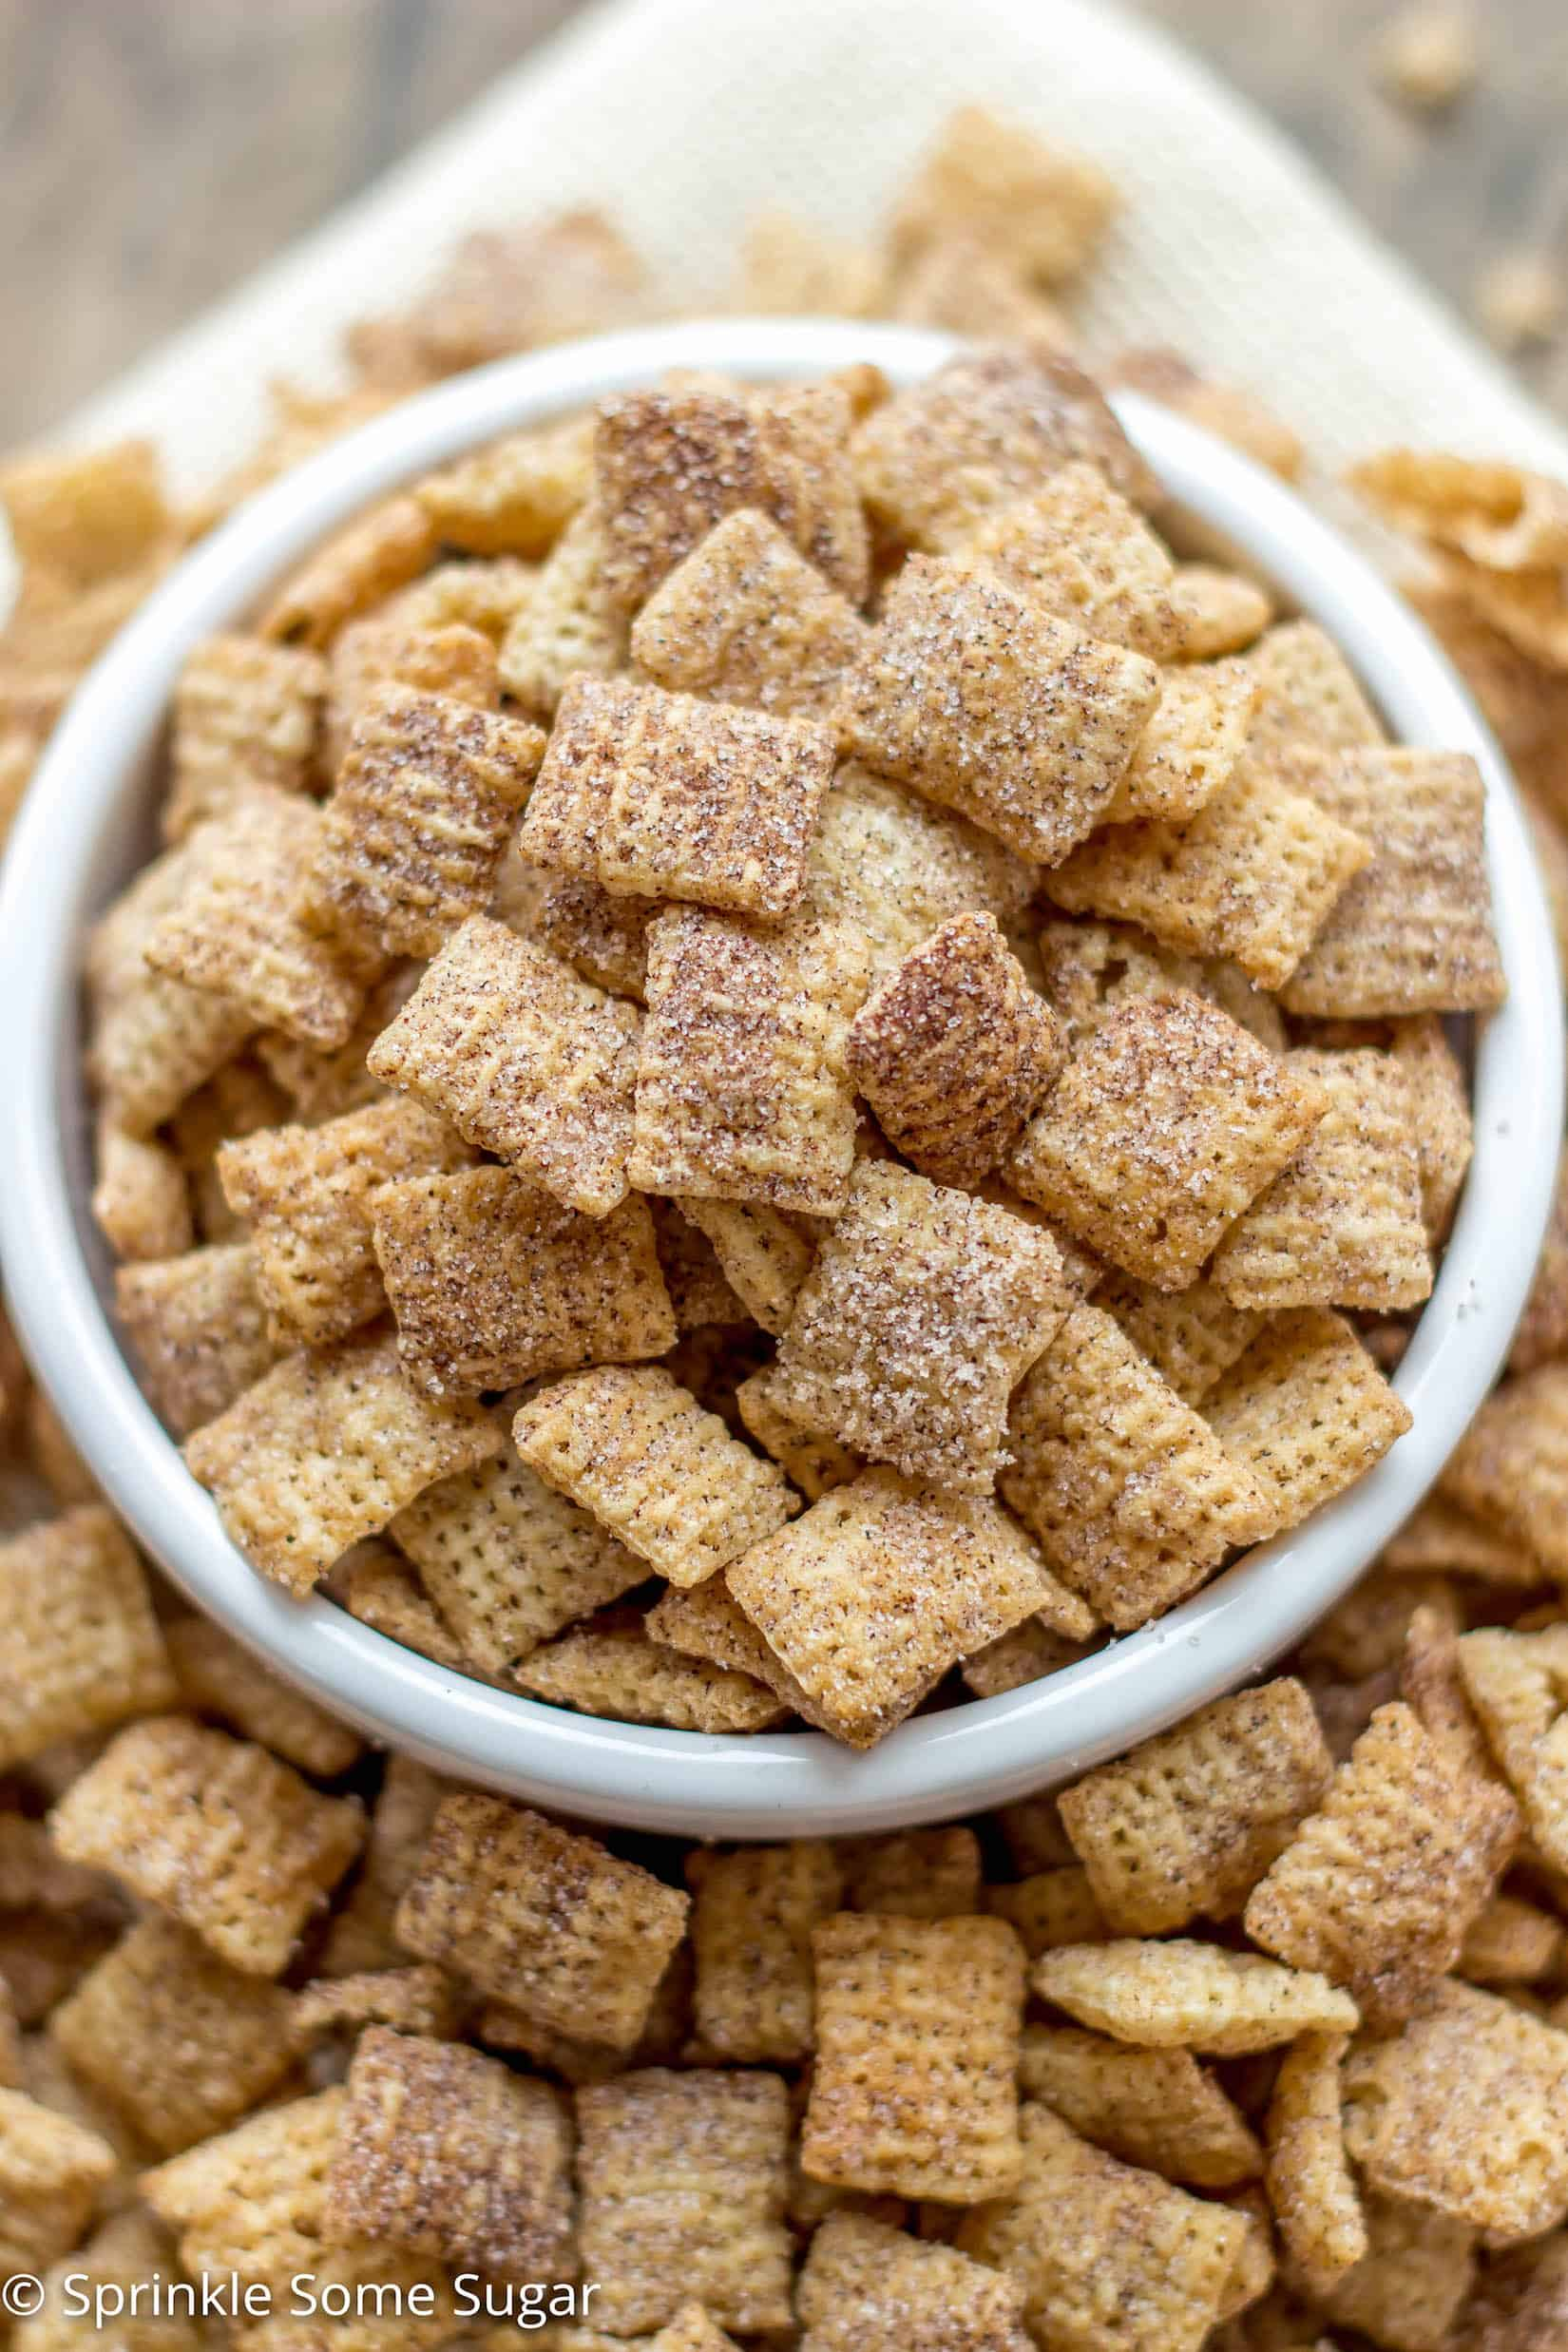 Cinnamon Sugar Chex Mix Sprinkle Some Sugar